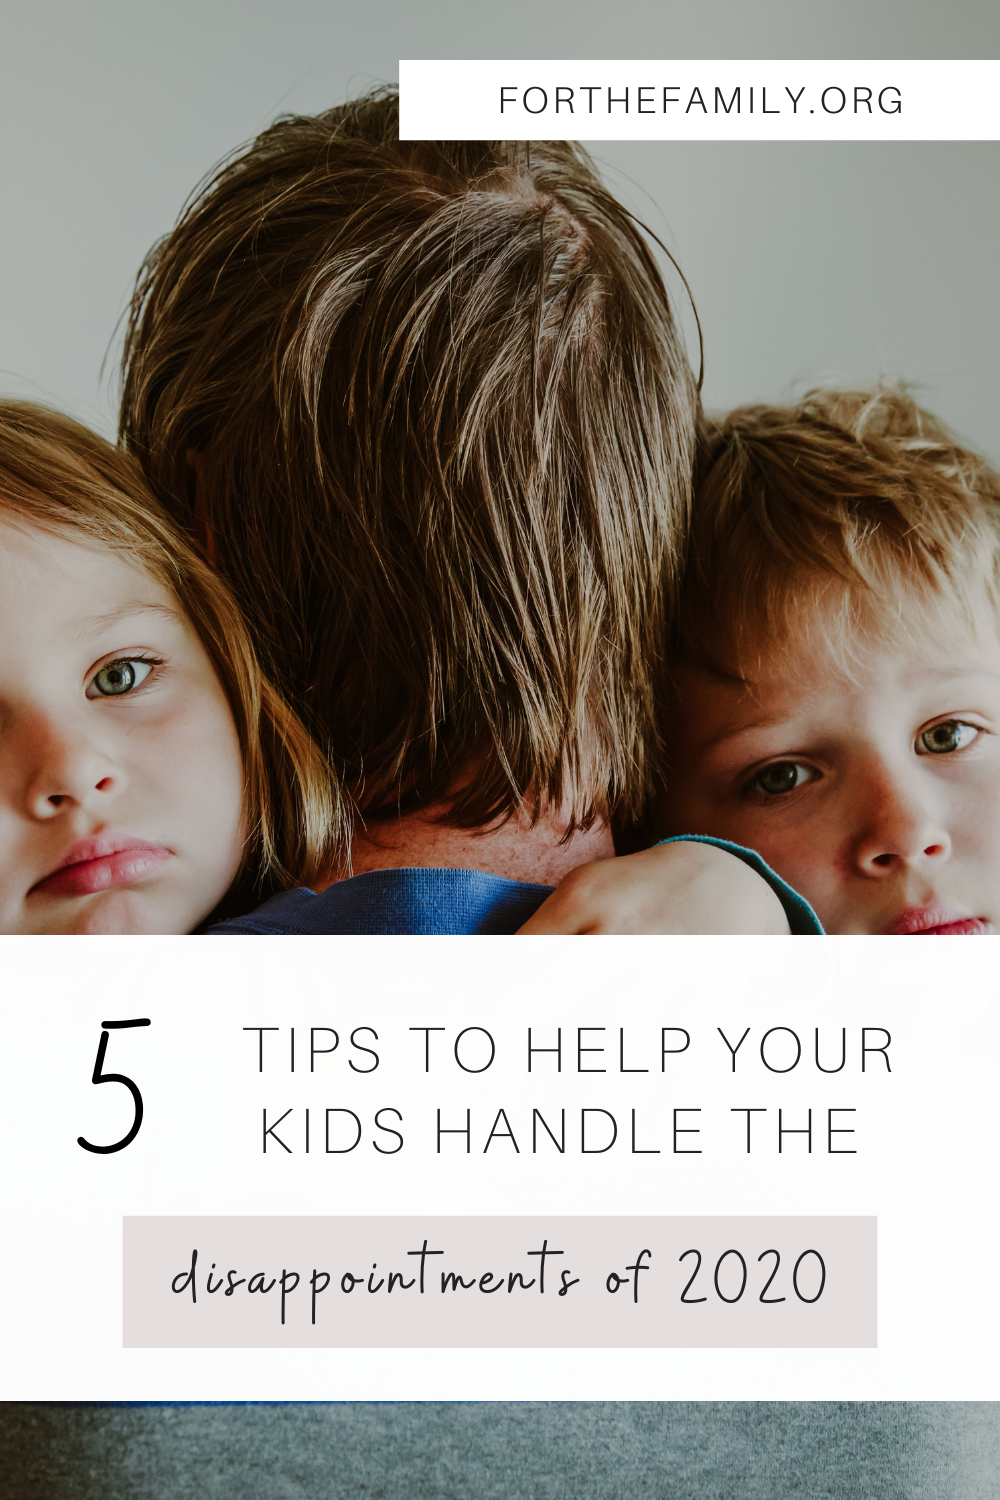 5 Tips to Help Your Kids Handle the Disappointments of 2020. forthefamily.org